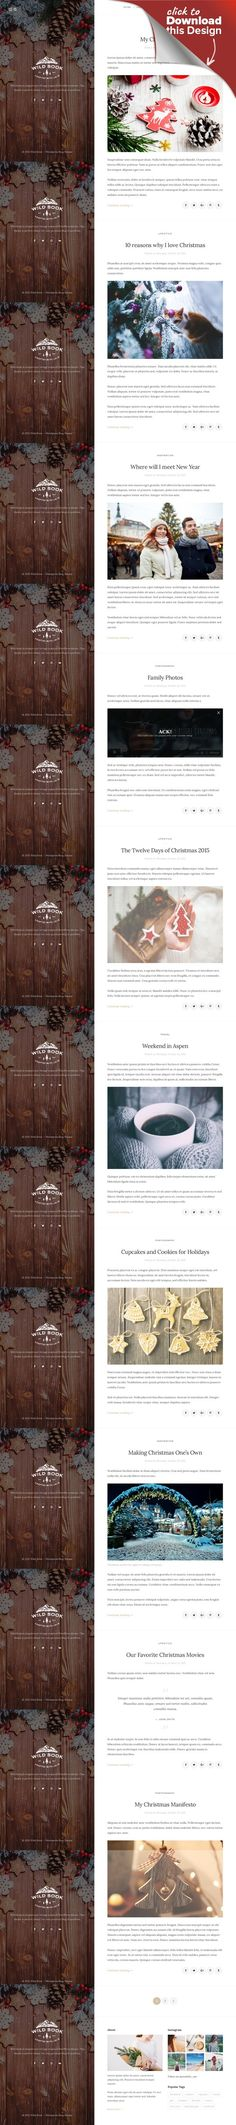 Wild Book - Vintage, Elegant & Summer WordPress Personal Blog Theme (Multilingual, RTL support) arabic, camping, cooking and tasty food, diary, ecology of nature, garden, hipster, multilingual, psychology craft handmade halloween christmas, rtl, side navigation, split screen, street fashion and style, trip, Watercolor Painting Wild Book is a vintage, elegant & creative WordPress theme. Best choice for personal blog or portfolio websi...